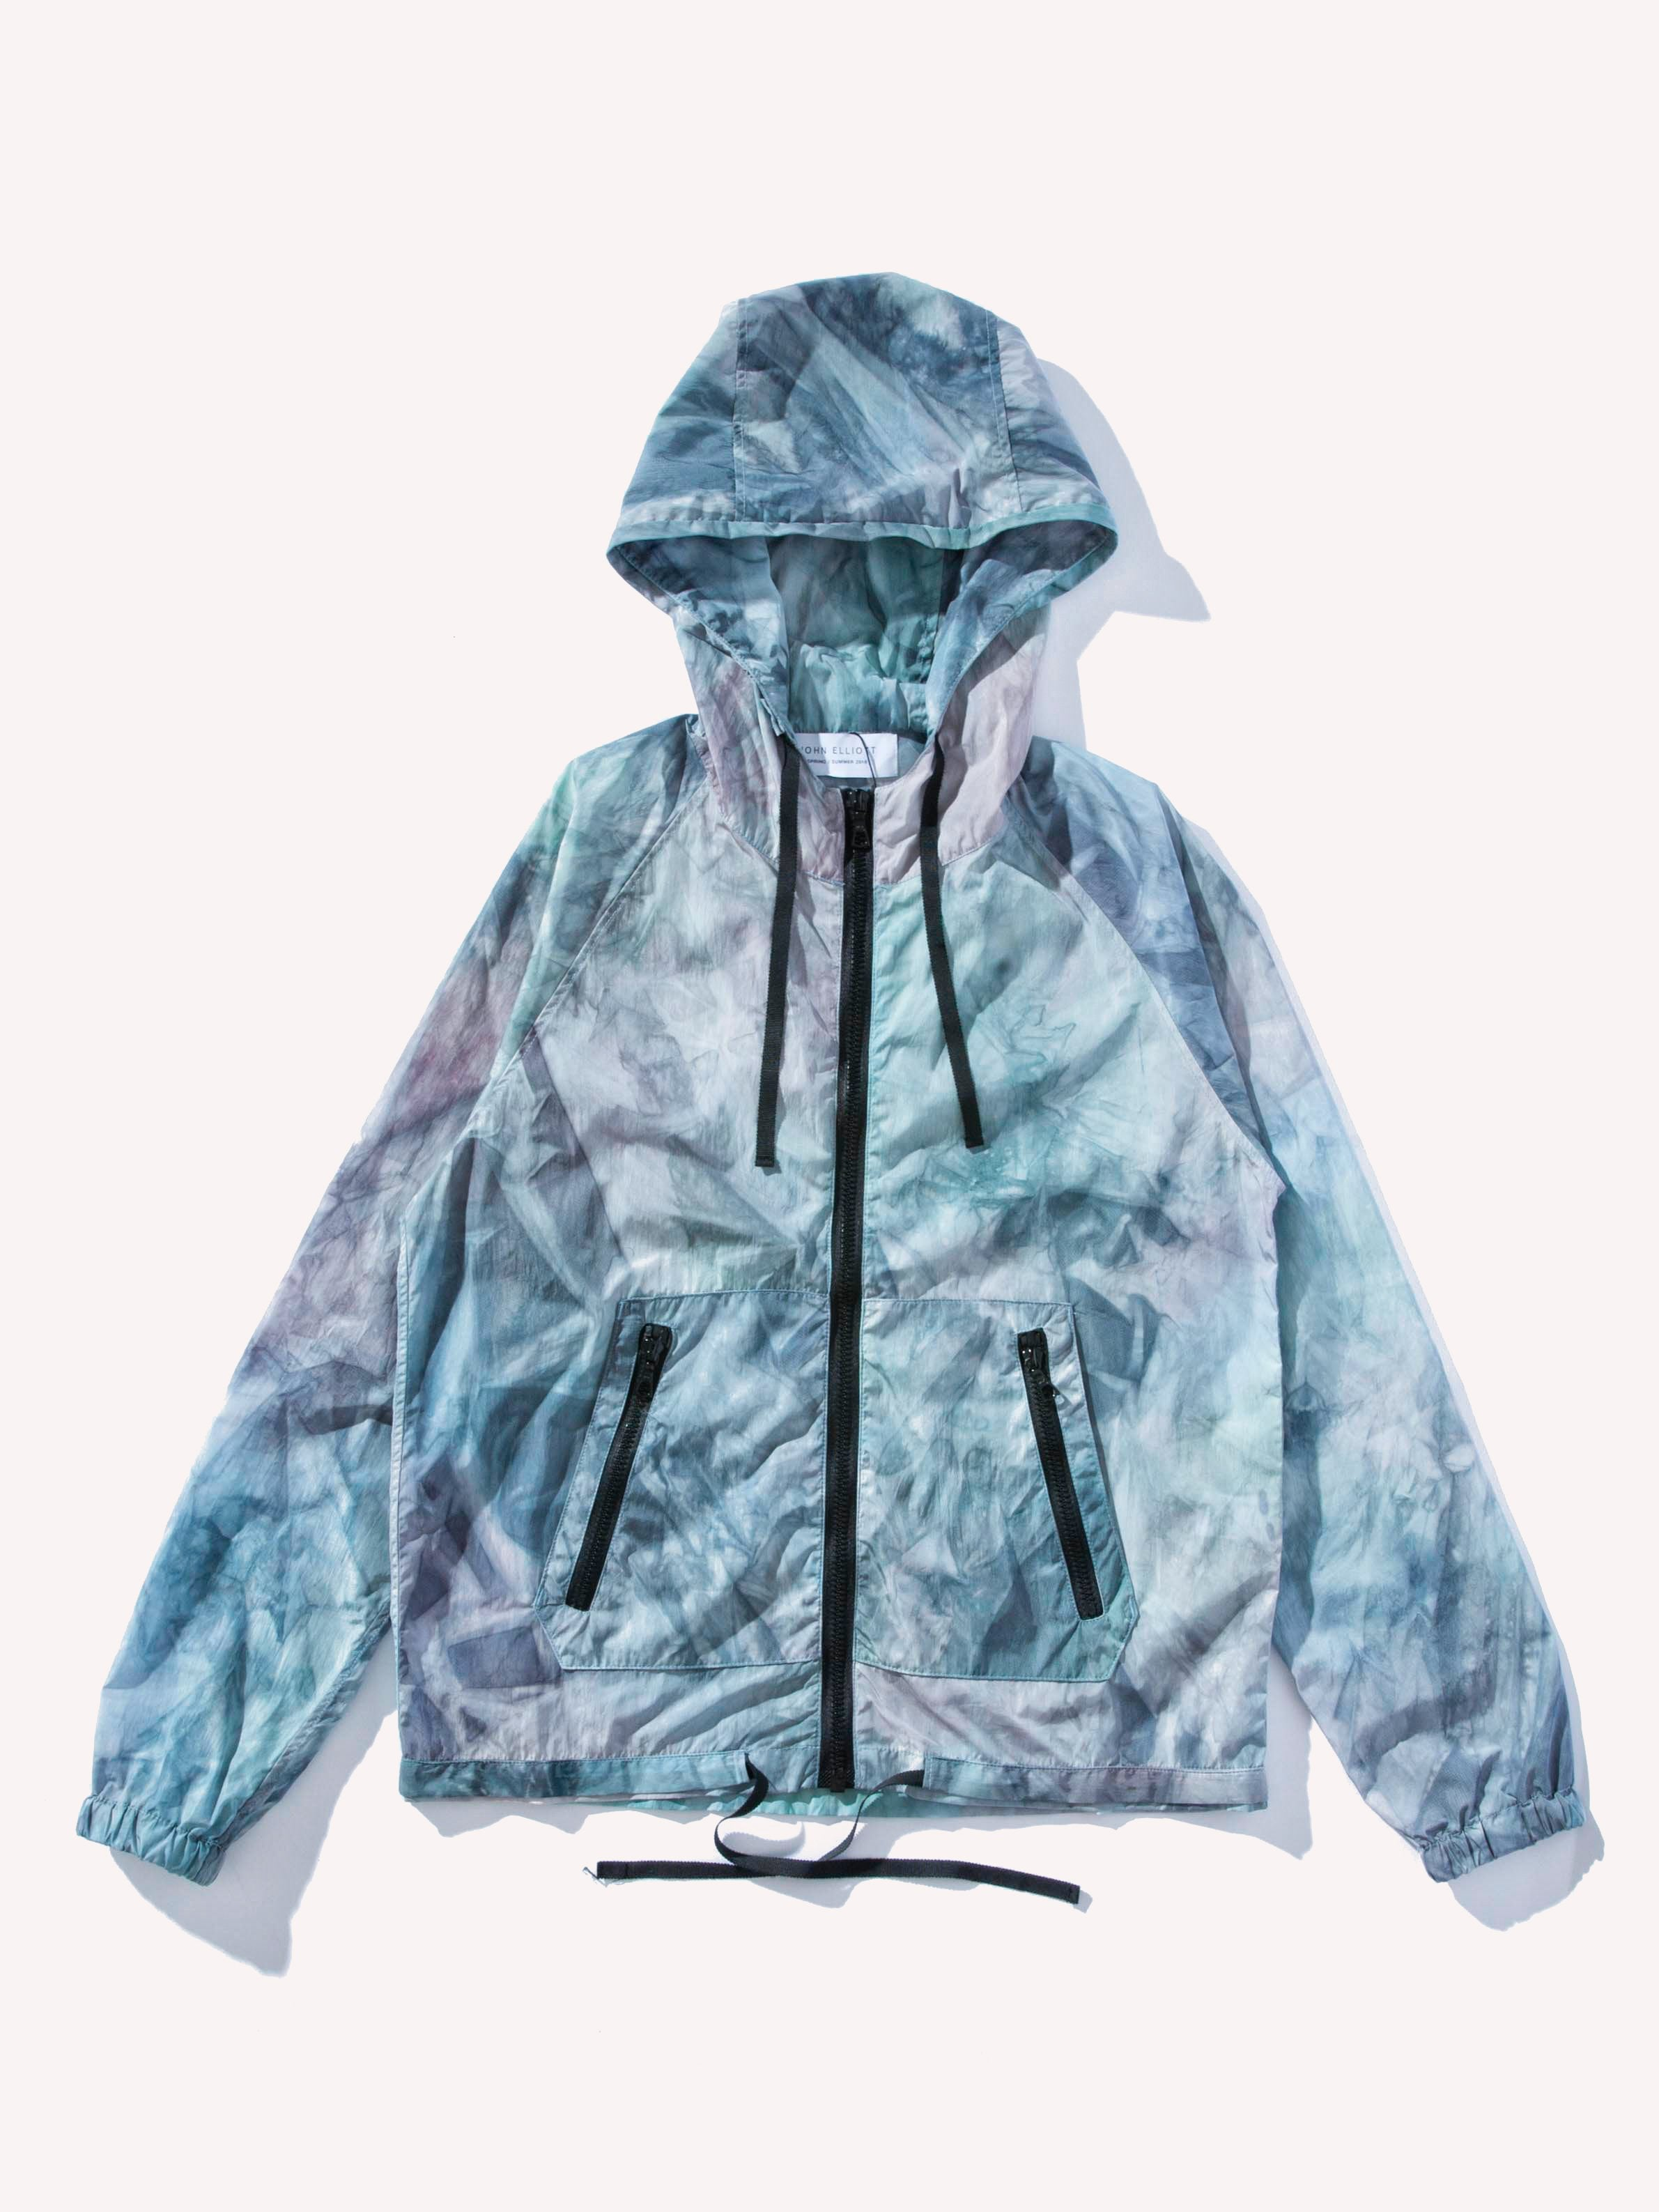 Blue/Purple Shell Jacket Tie-Dye 1